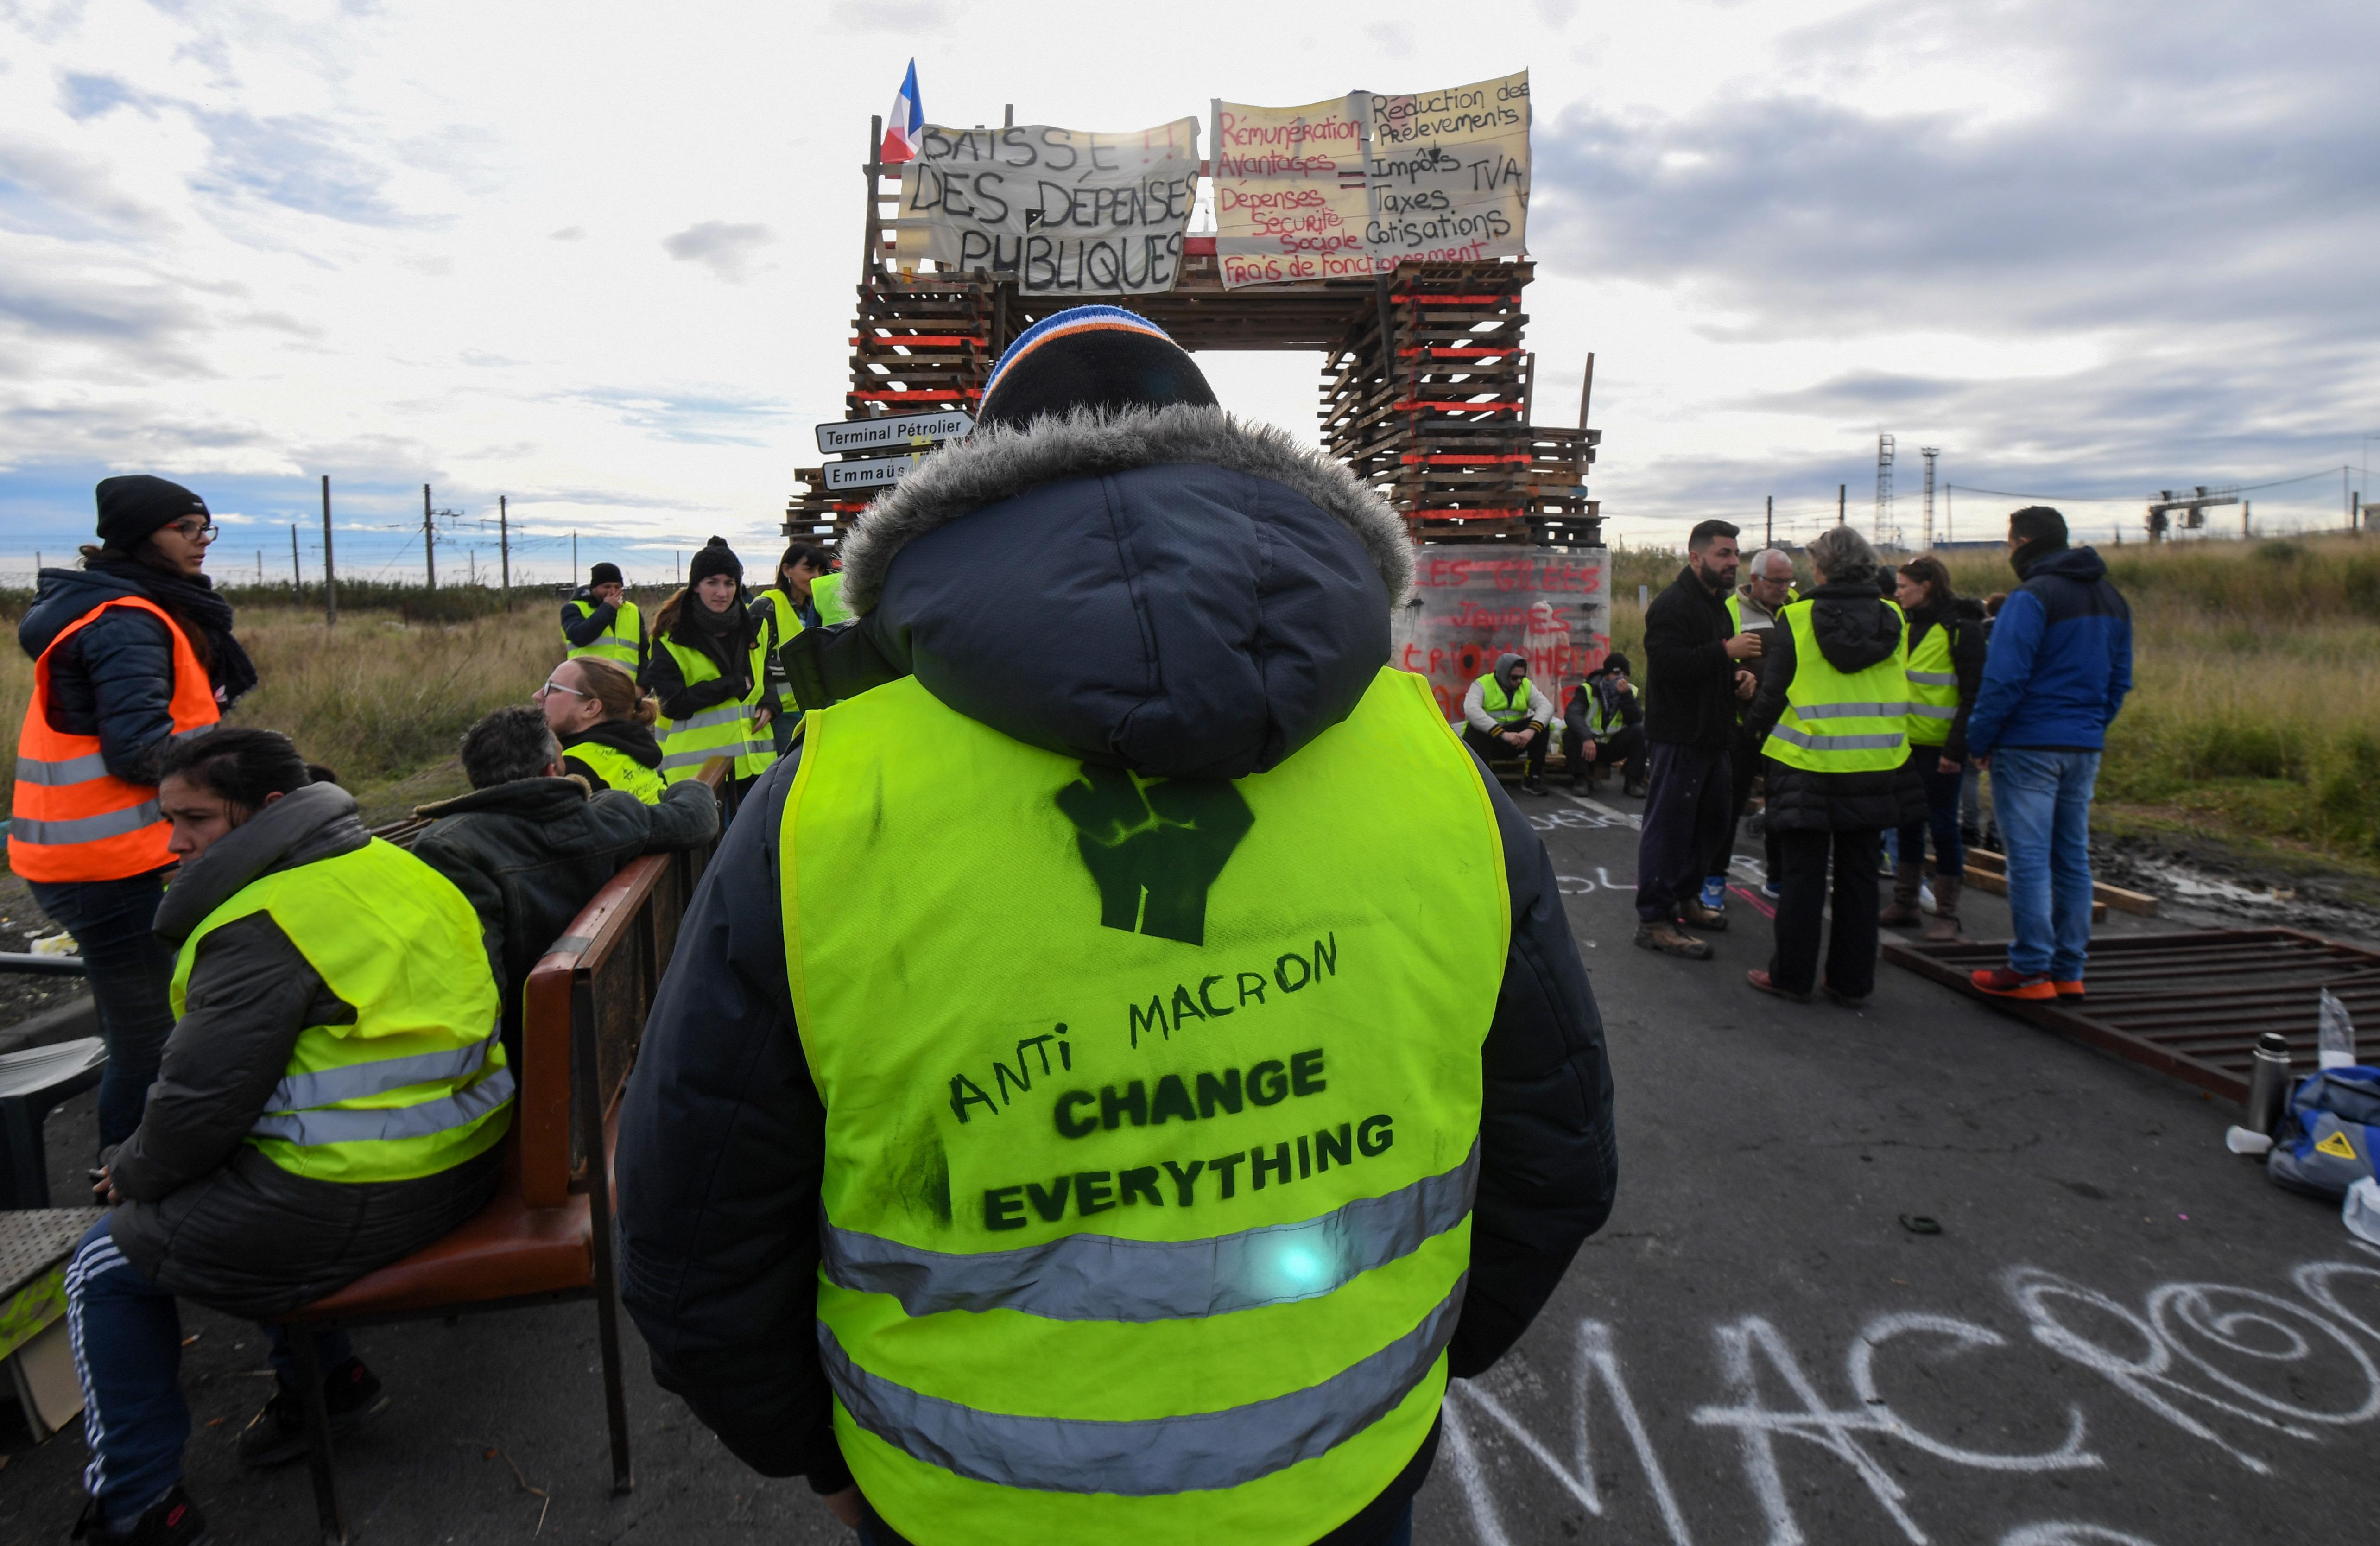 Yellow vests (Gilets jaunes) protesters block the road leading to the Frontignan oil depot in the south of France, as they demonstrate  against the rise in fuel prices and the cost of living on December 3, 2018. - Dozens of French 'yellow vest' demonstrators blocked access to a major fuel depot and several highways on the third week of anti-government protests which led to major riots in Paris at the weekend. (Photo by PASCAL GUYOT / AFP)        (Photo credit should read PASCAL GUYOT/AFP/Getty Images)